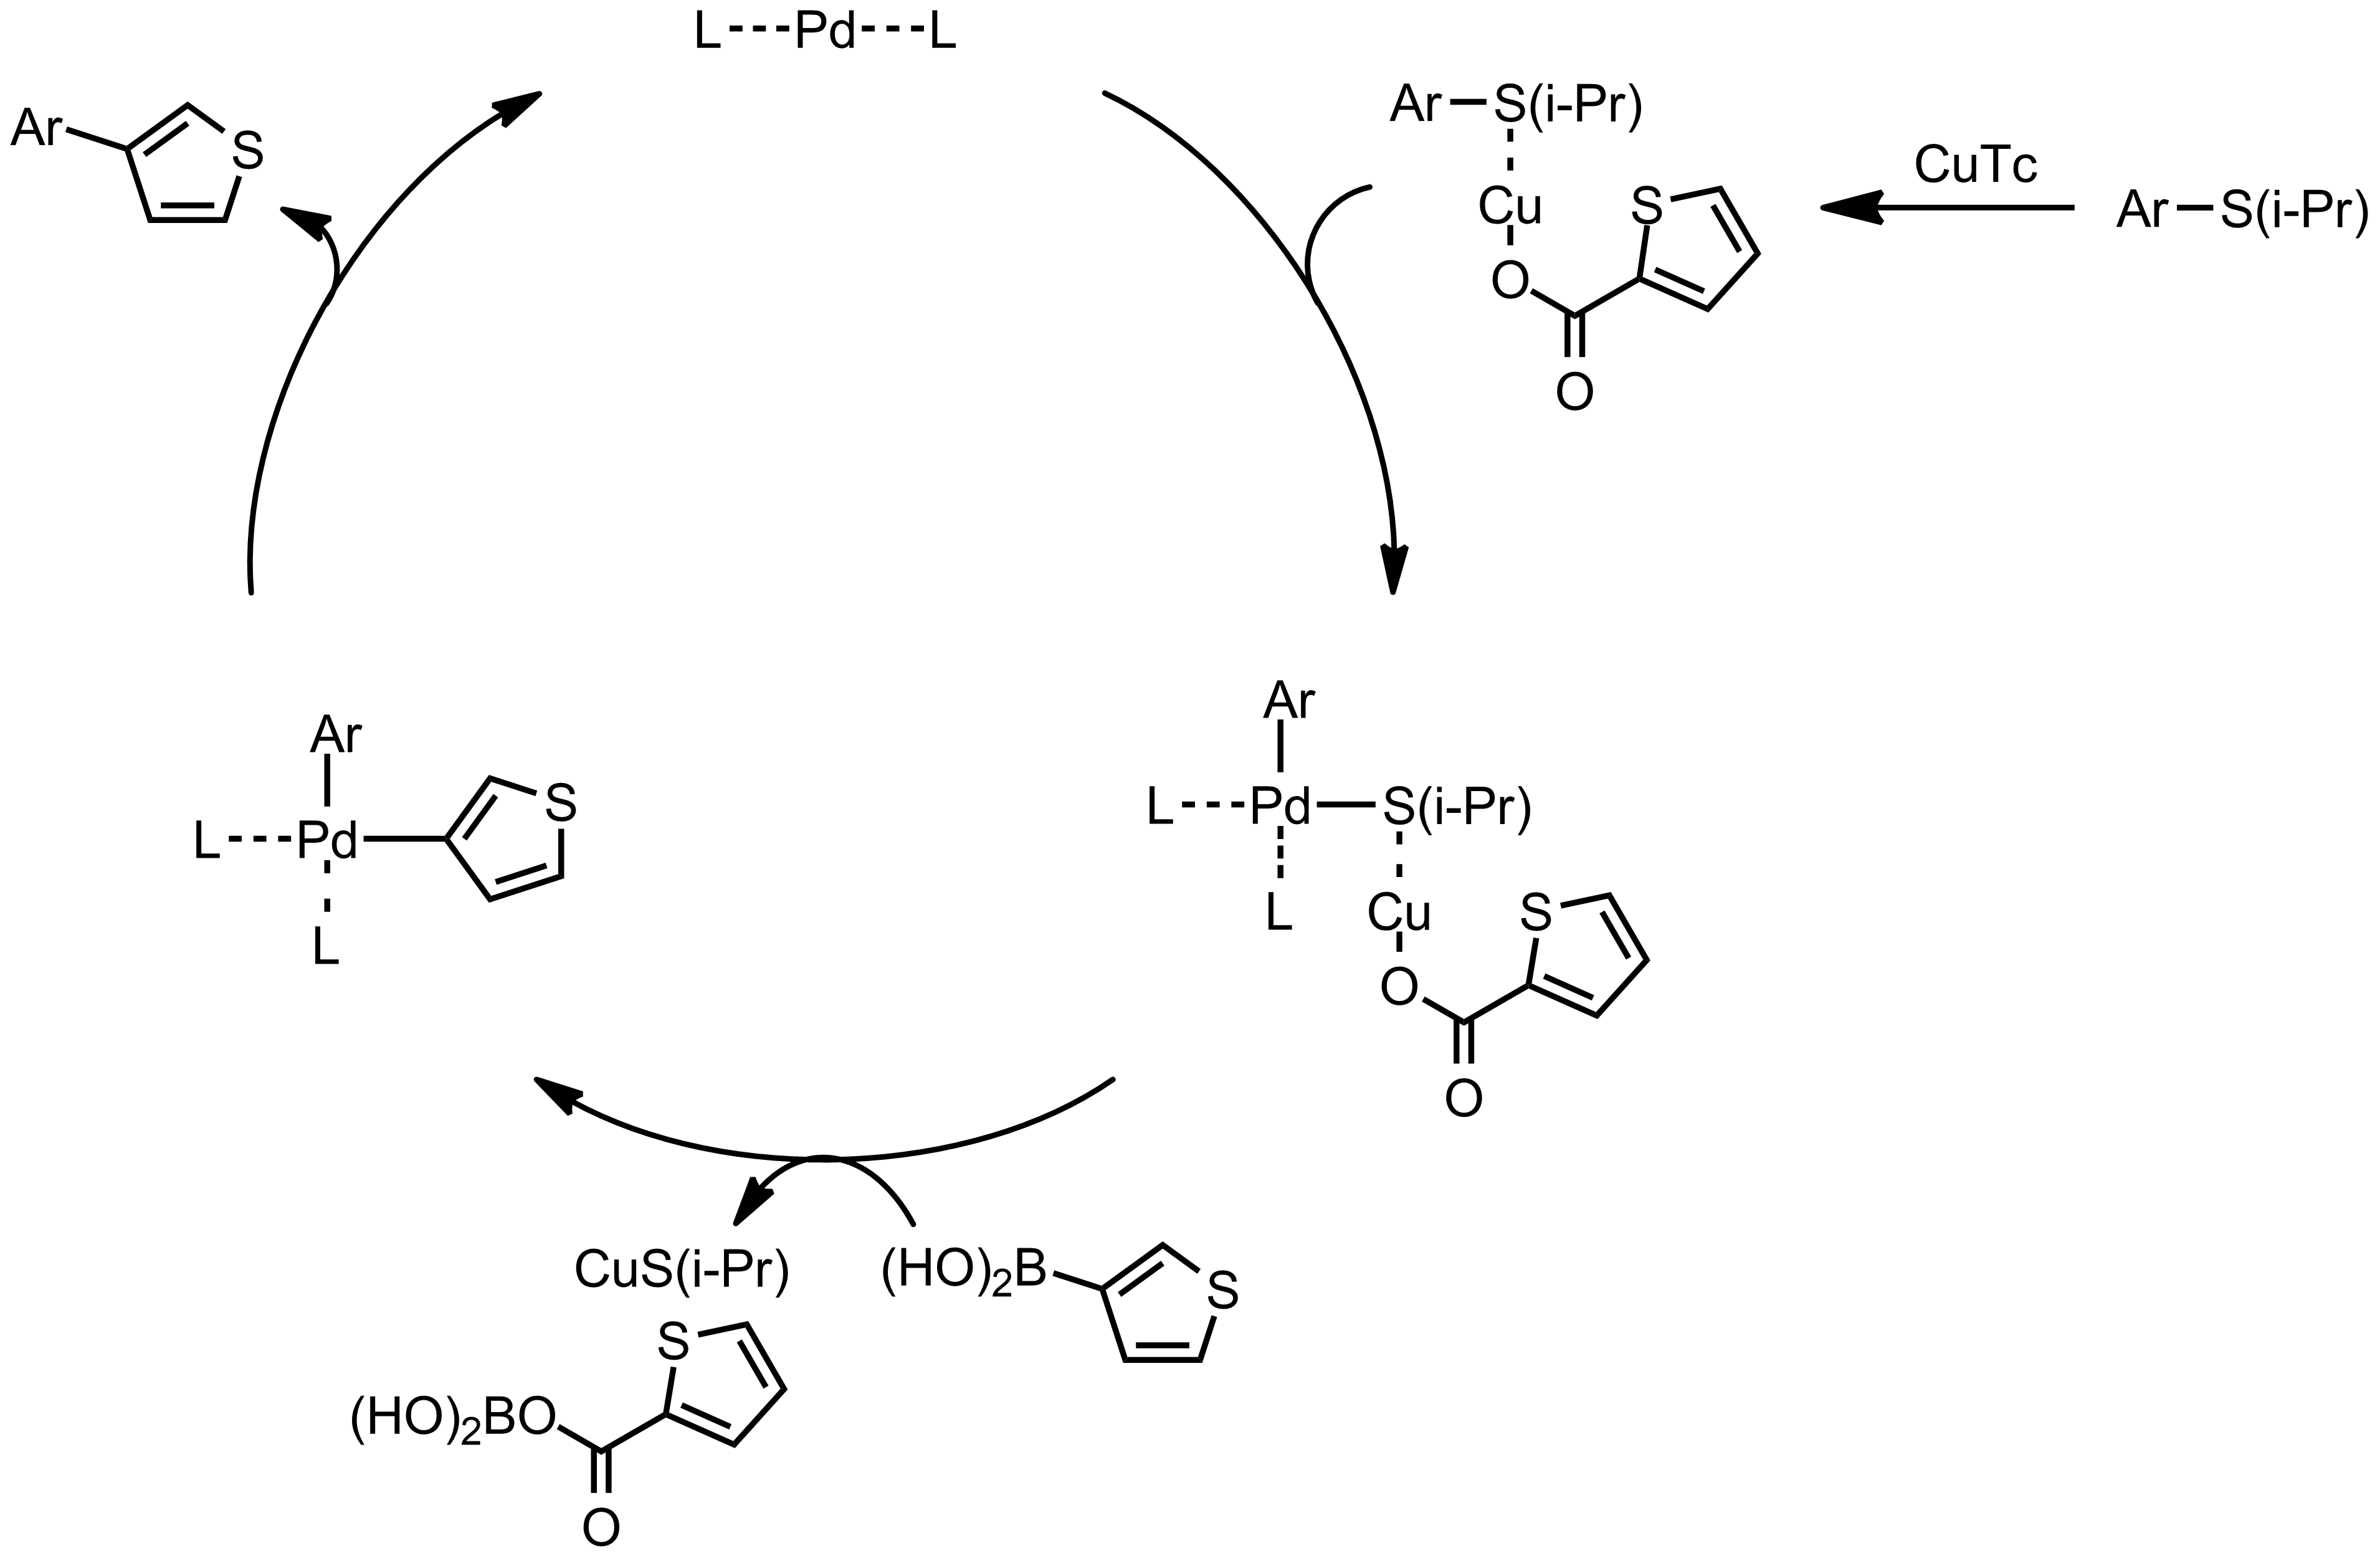 Mechanism of the Liebeskind-Srogl Coupling